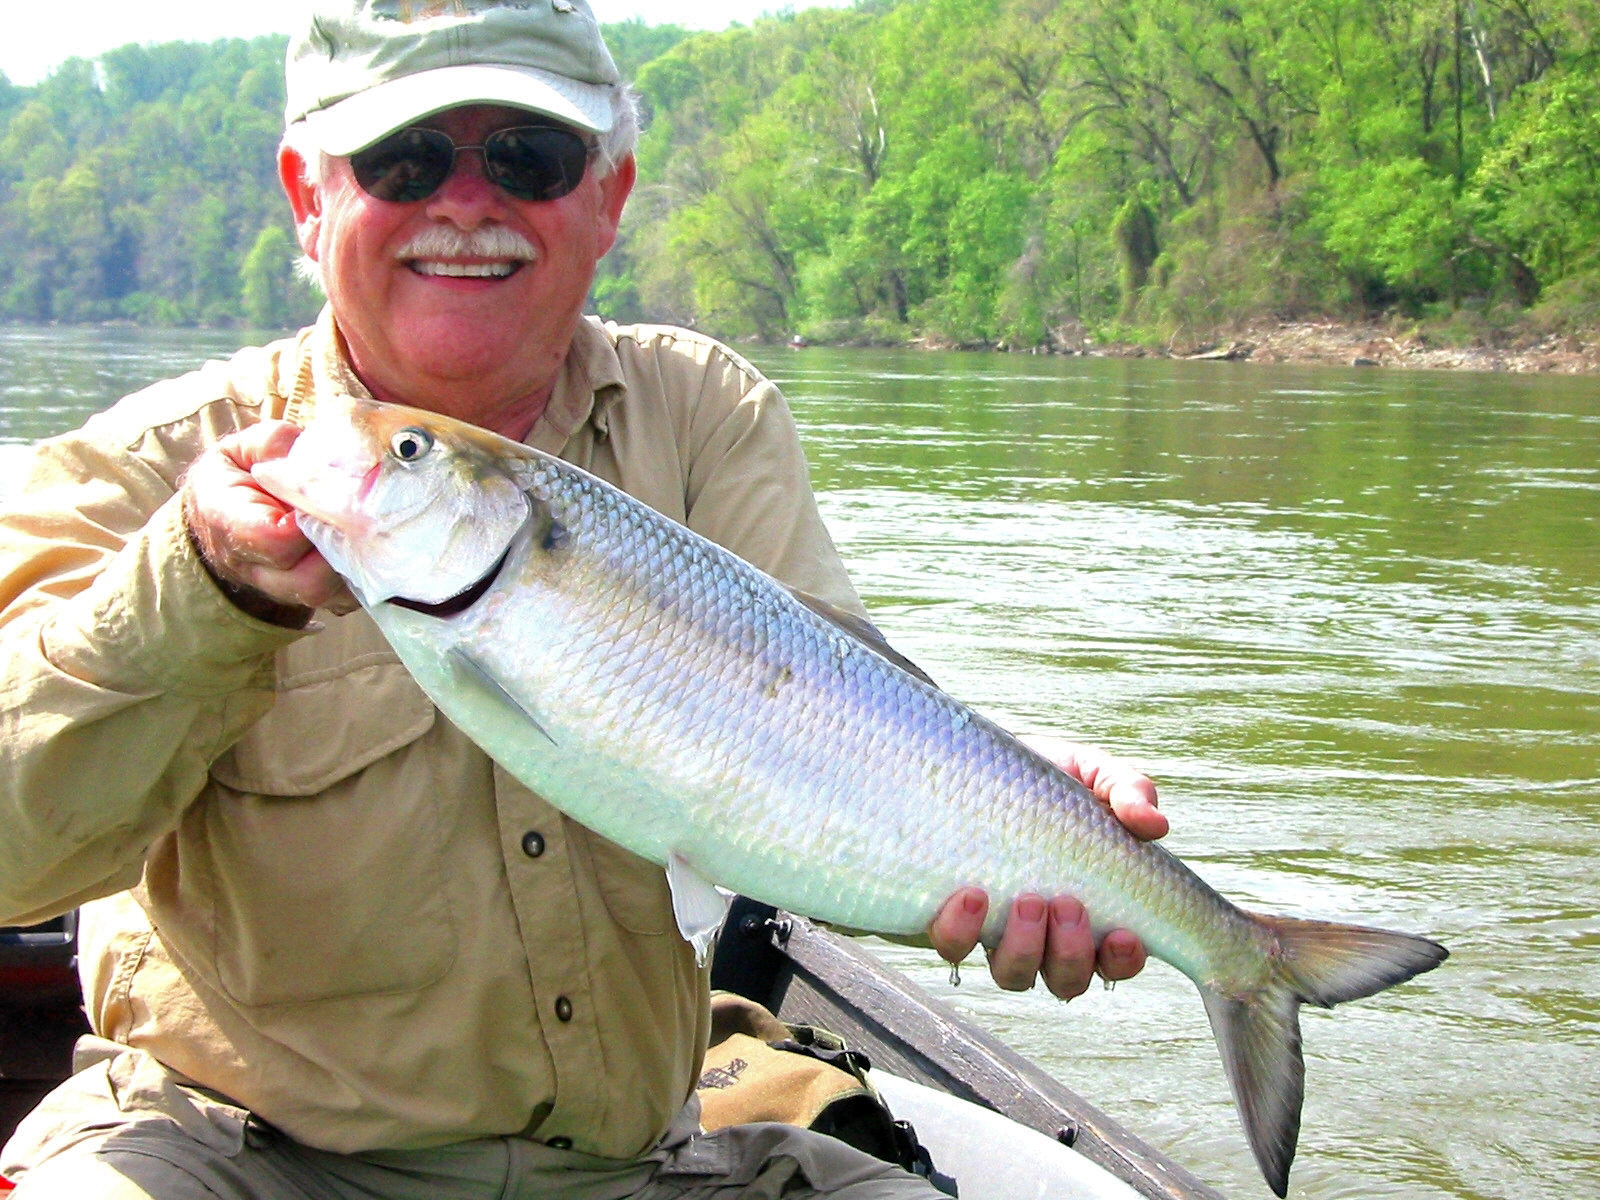 Bob Bishopholding an American Shad caught in the POtomac at Fletcher's Cove. Photo Taken by Tom Guffain.